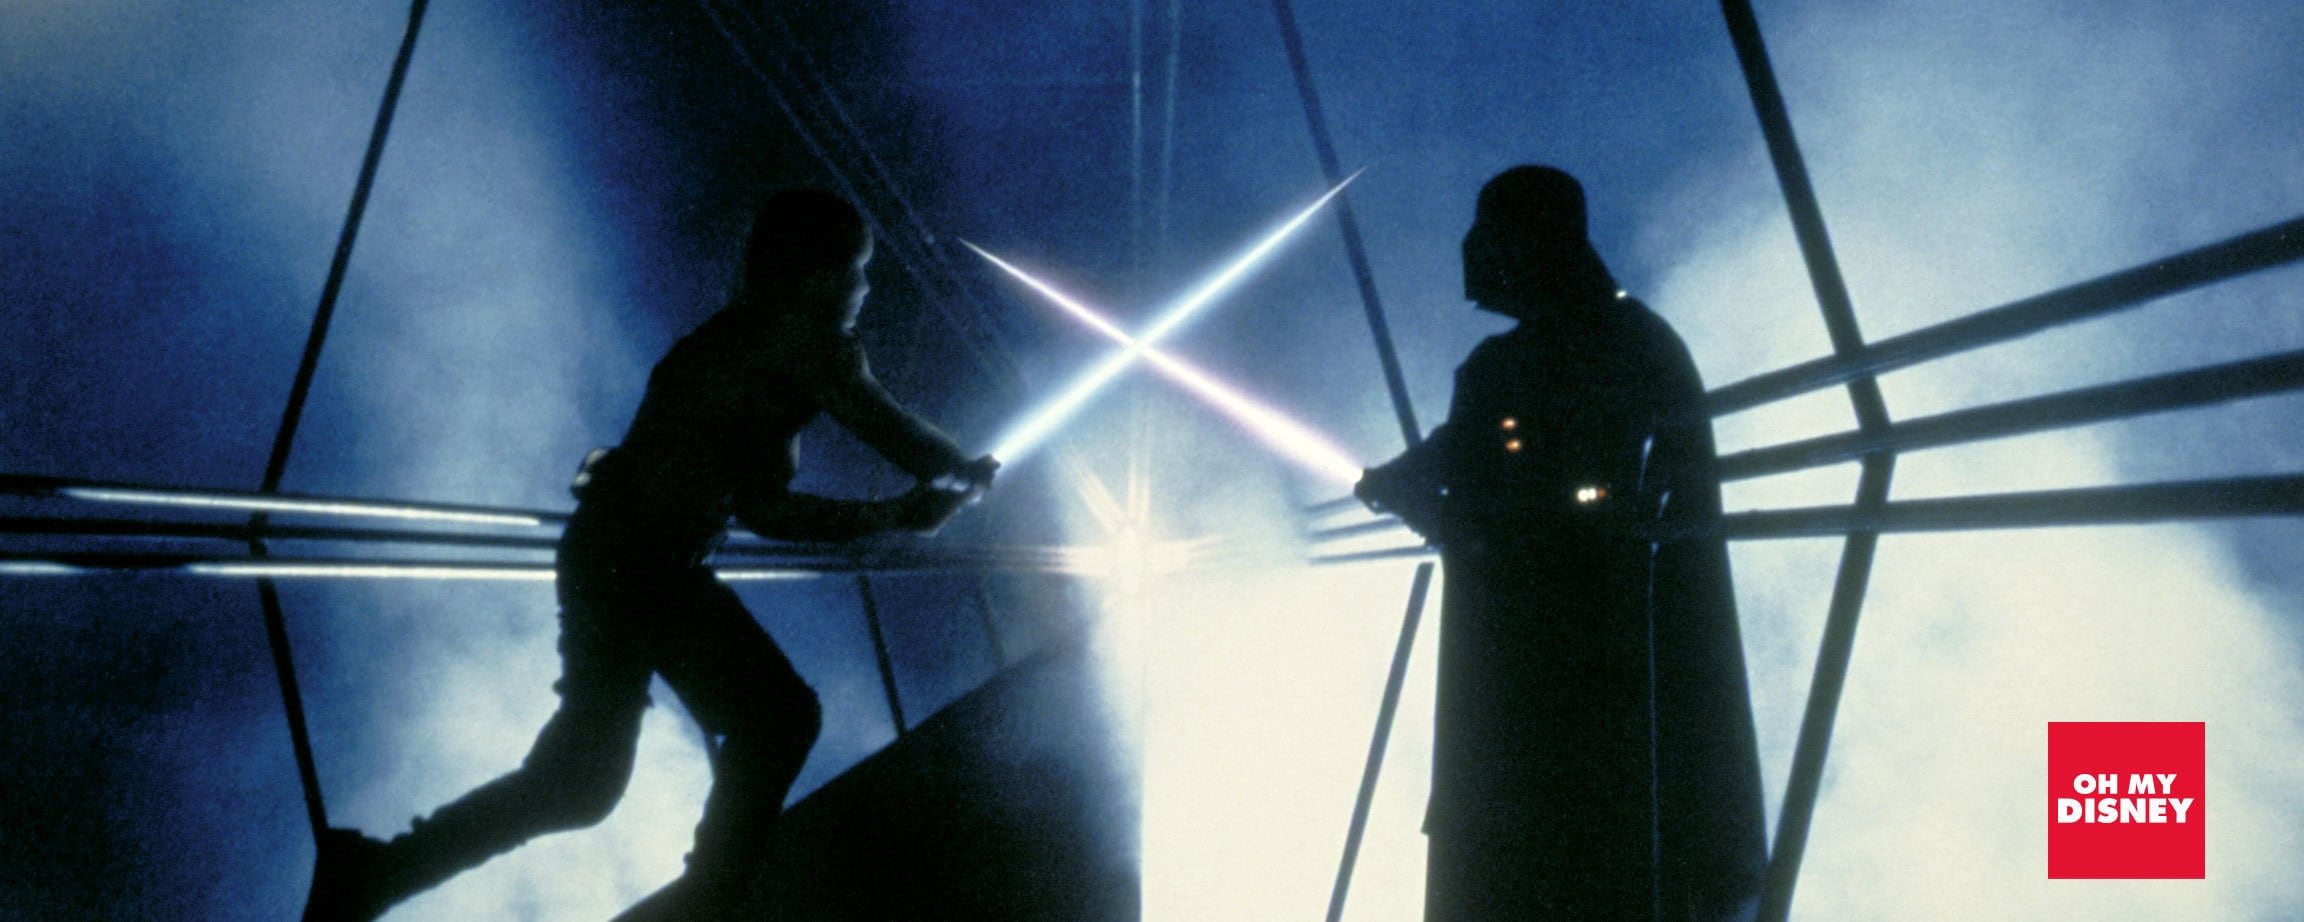 Star Wars Quiz - Luke Skywalker and Darth Vader